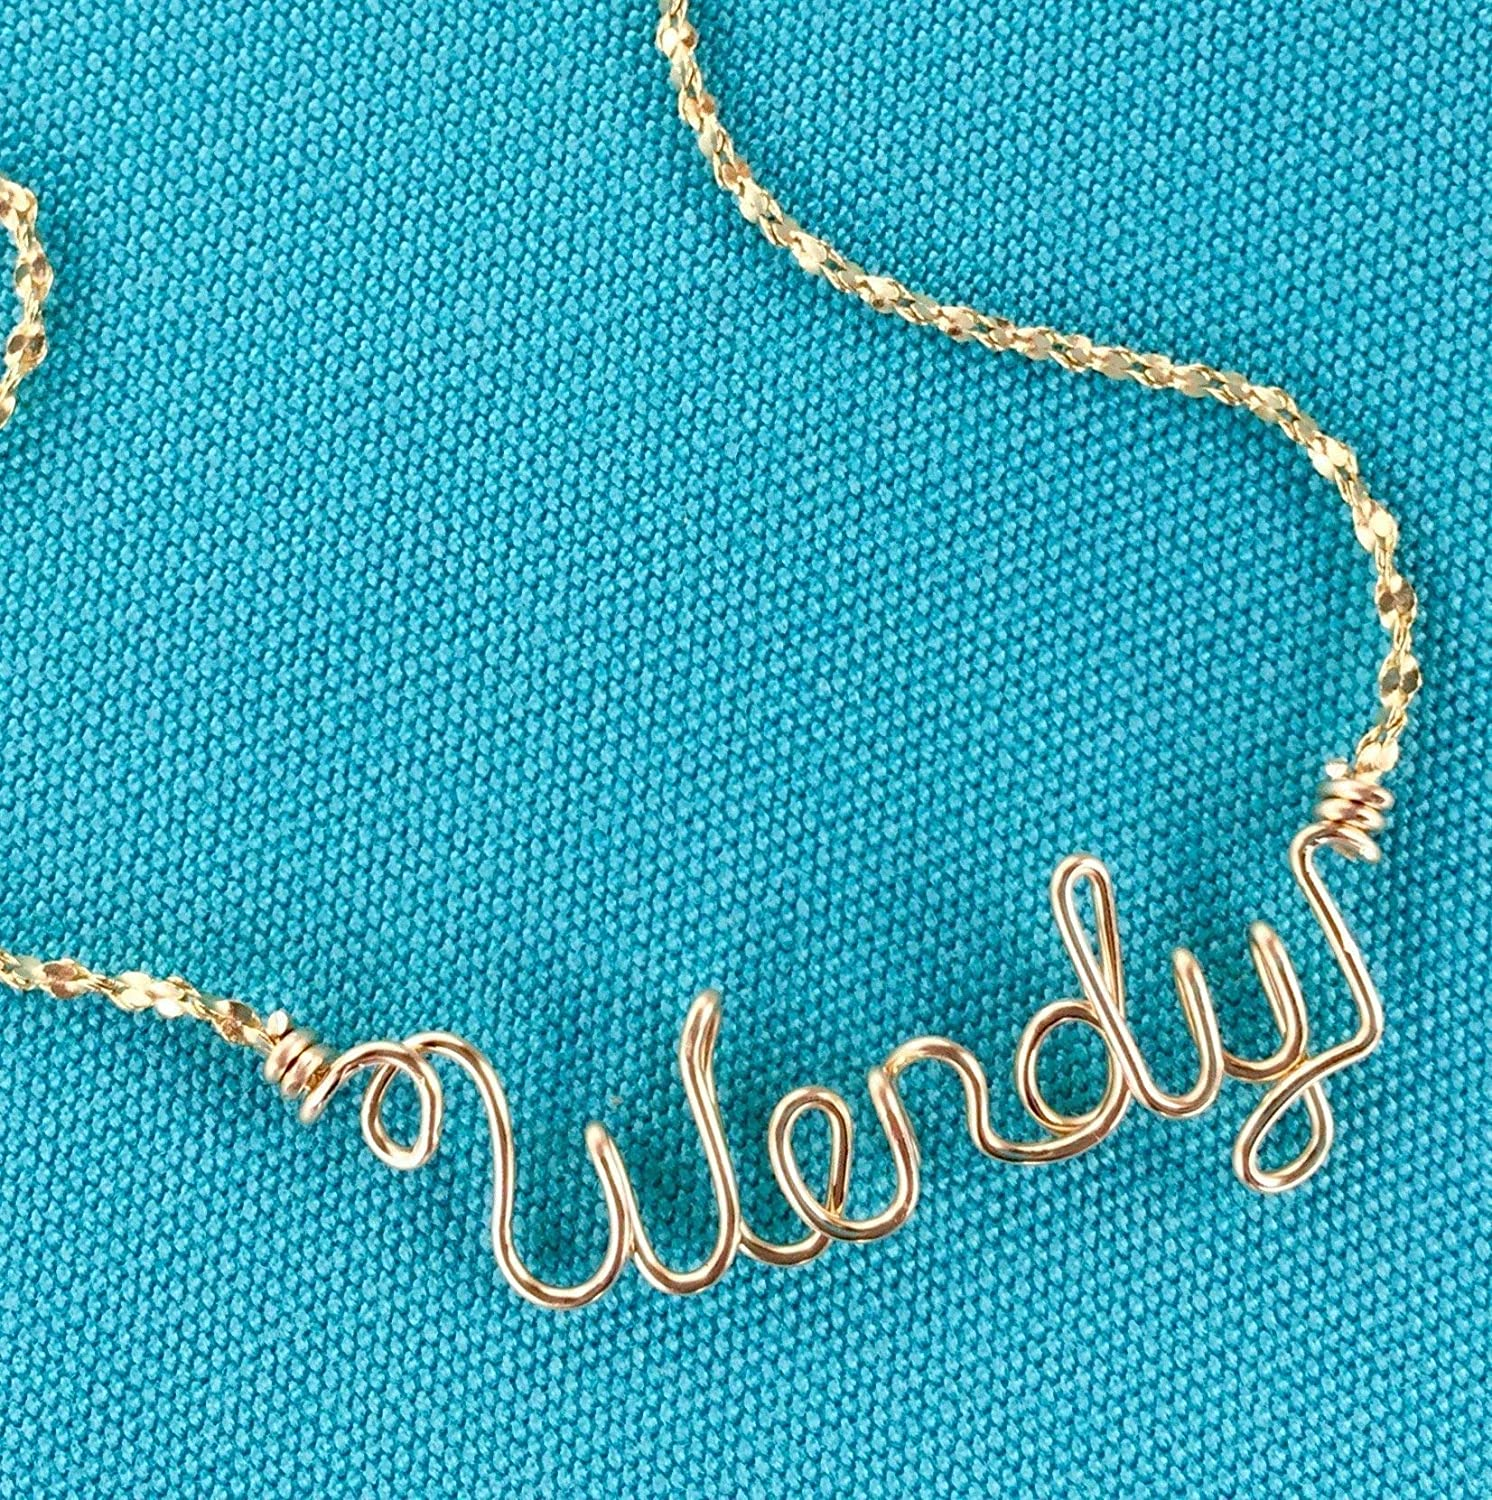 Personalized Jewelry~Gold Wire Name Necklace or Anklet~Charm w/Swarovski Birthstone~Heart, Cross, Star, Flower or Peace Sign~Any Name~Handcrafted Name Jewelry